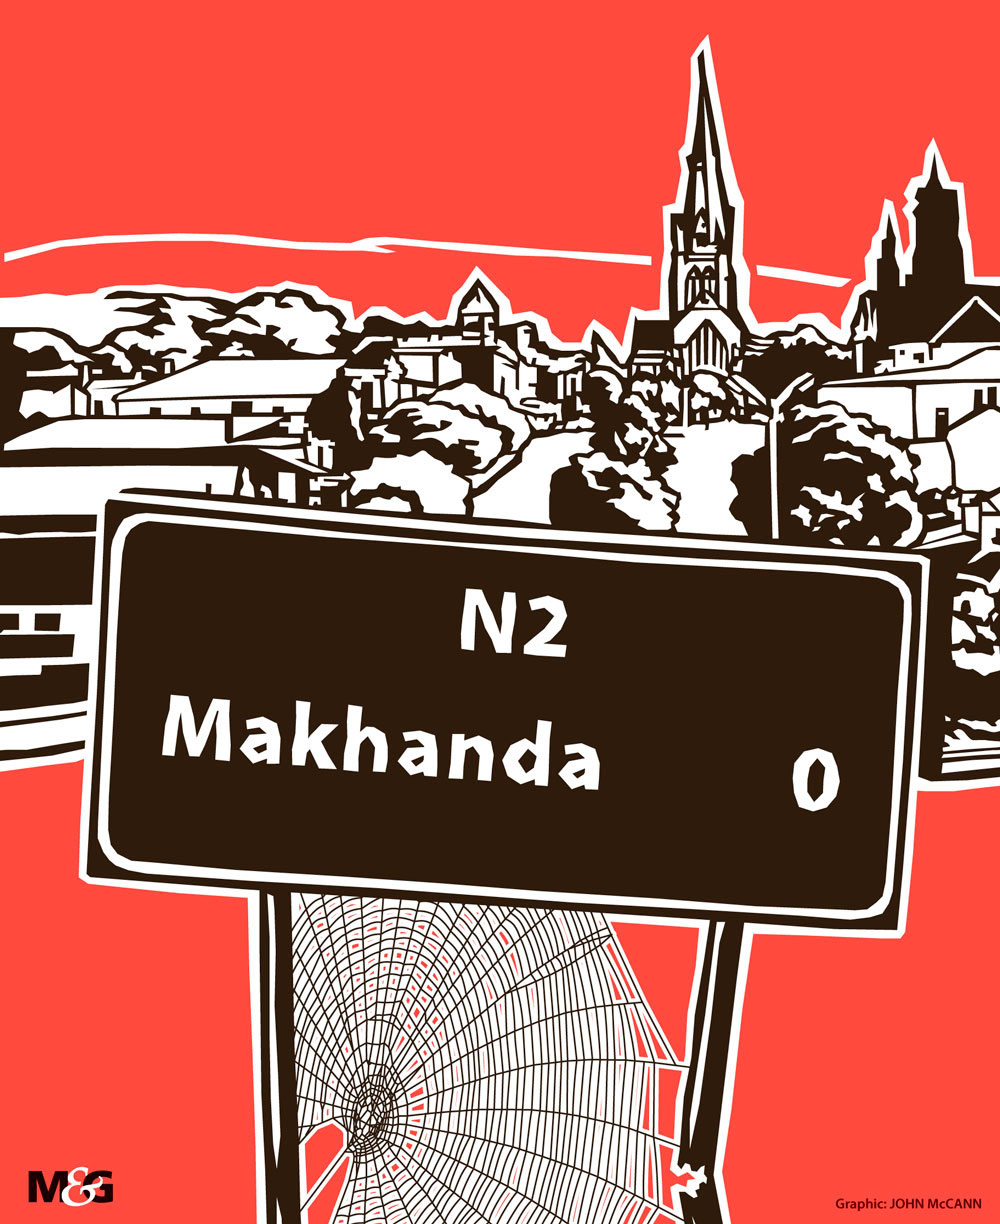 The Makhanda disaster cannot be ignored - Mail and Guardian